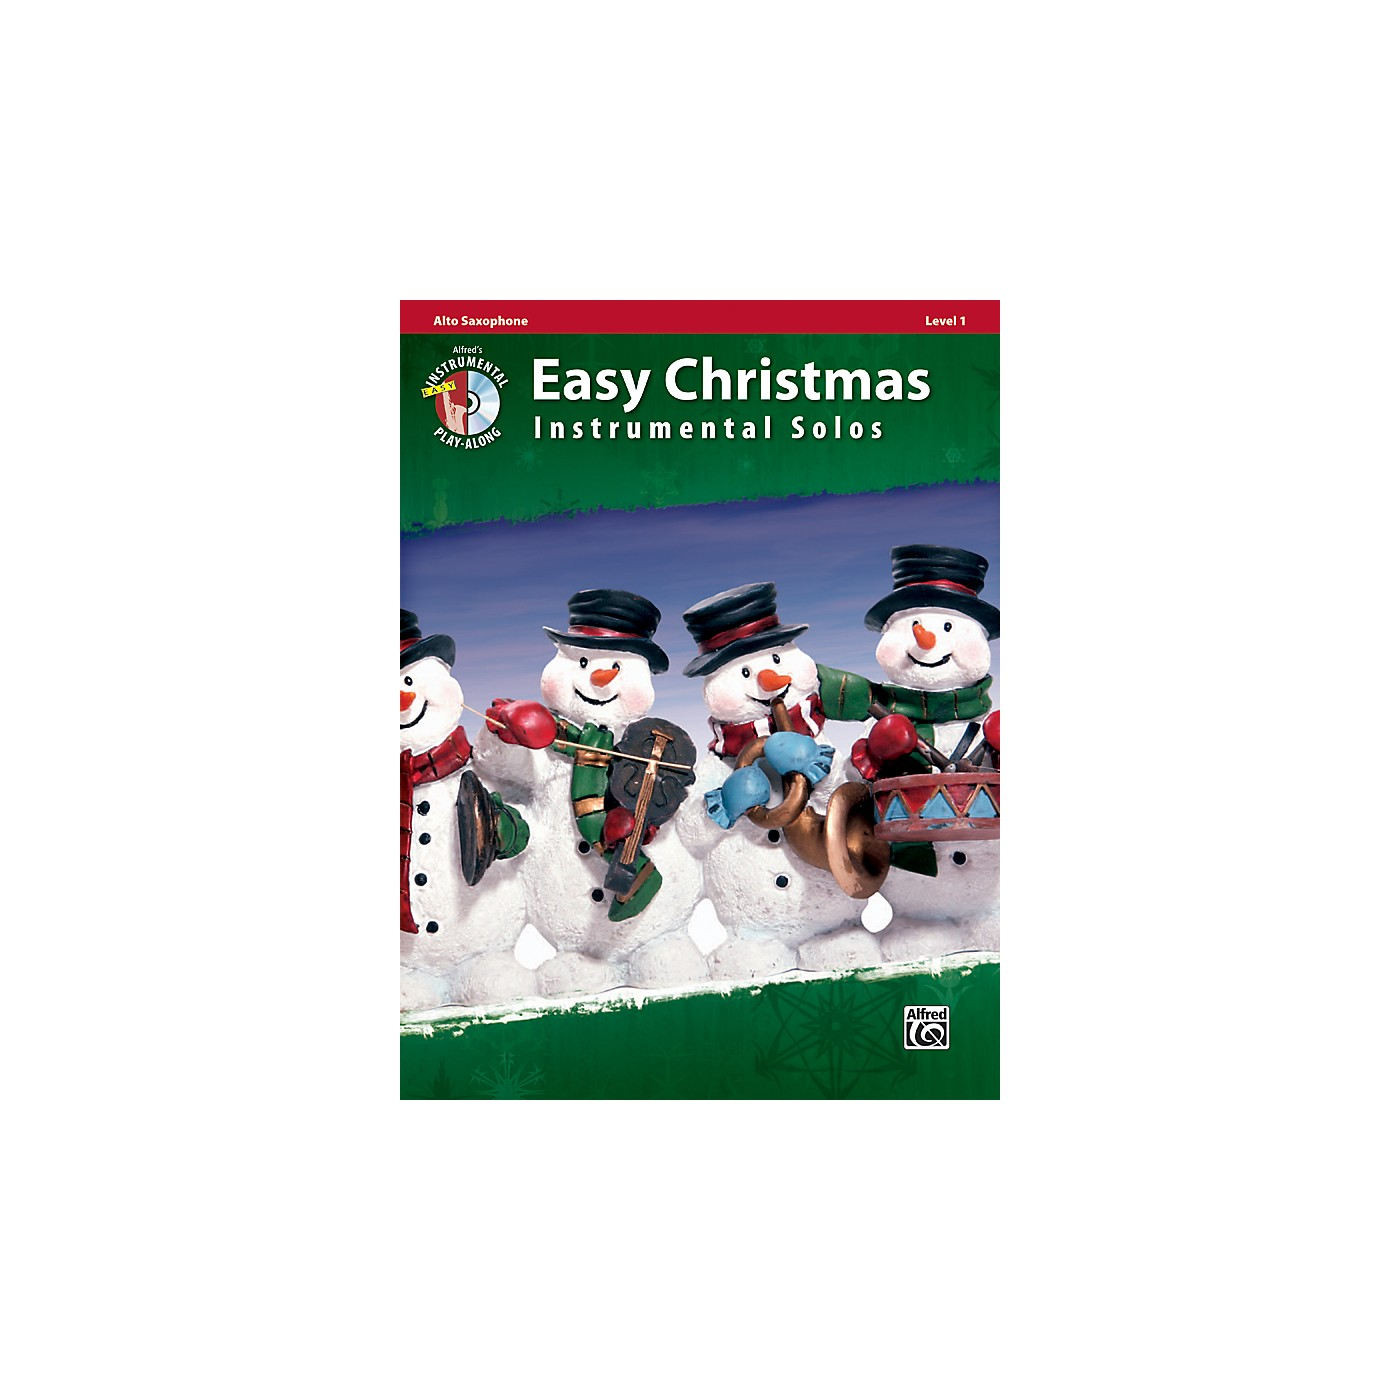 Alfred Easy Christmas Instrumental Solos Level 1 Alto Sax Book & CD thumbnail